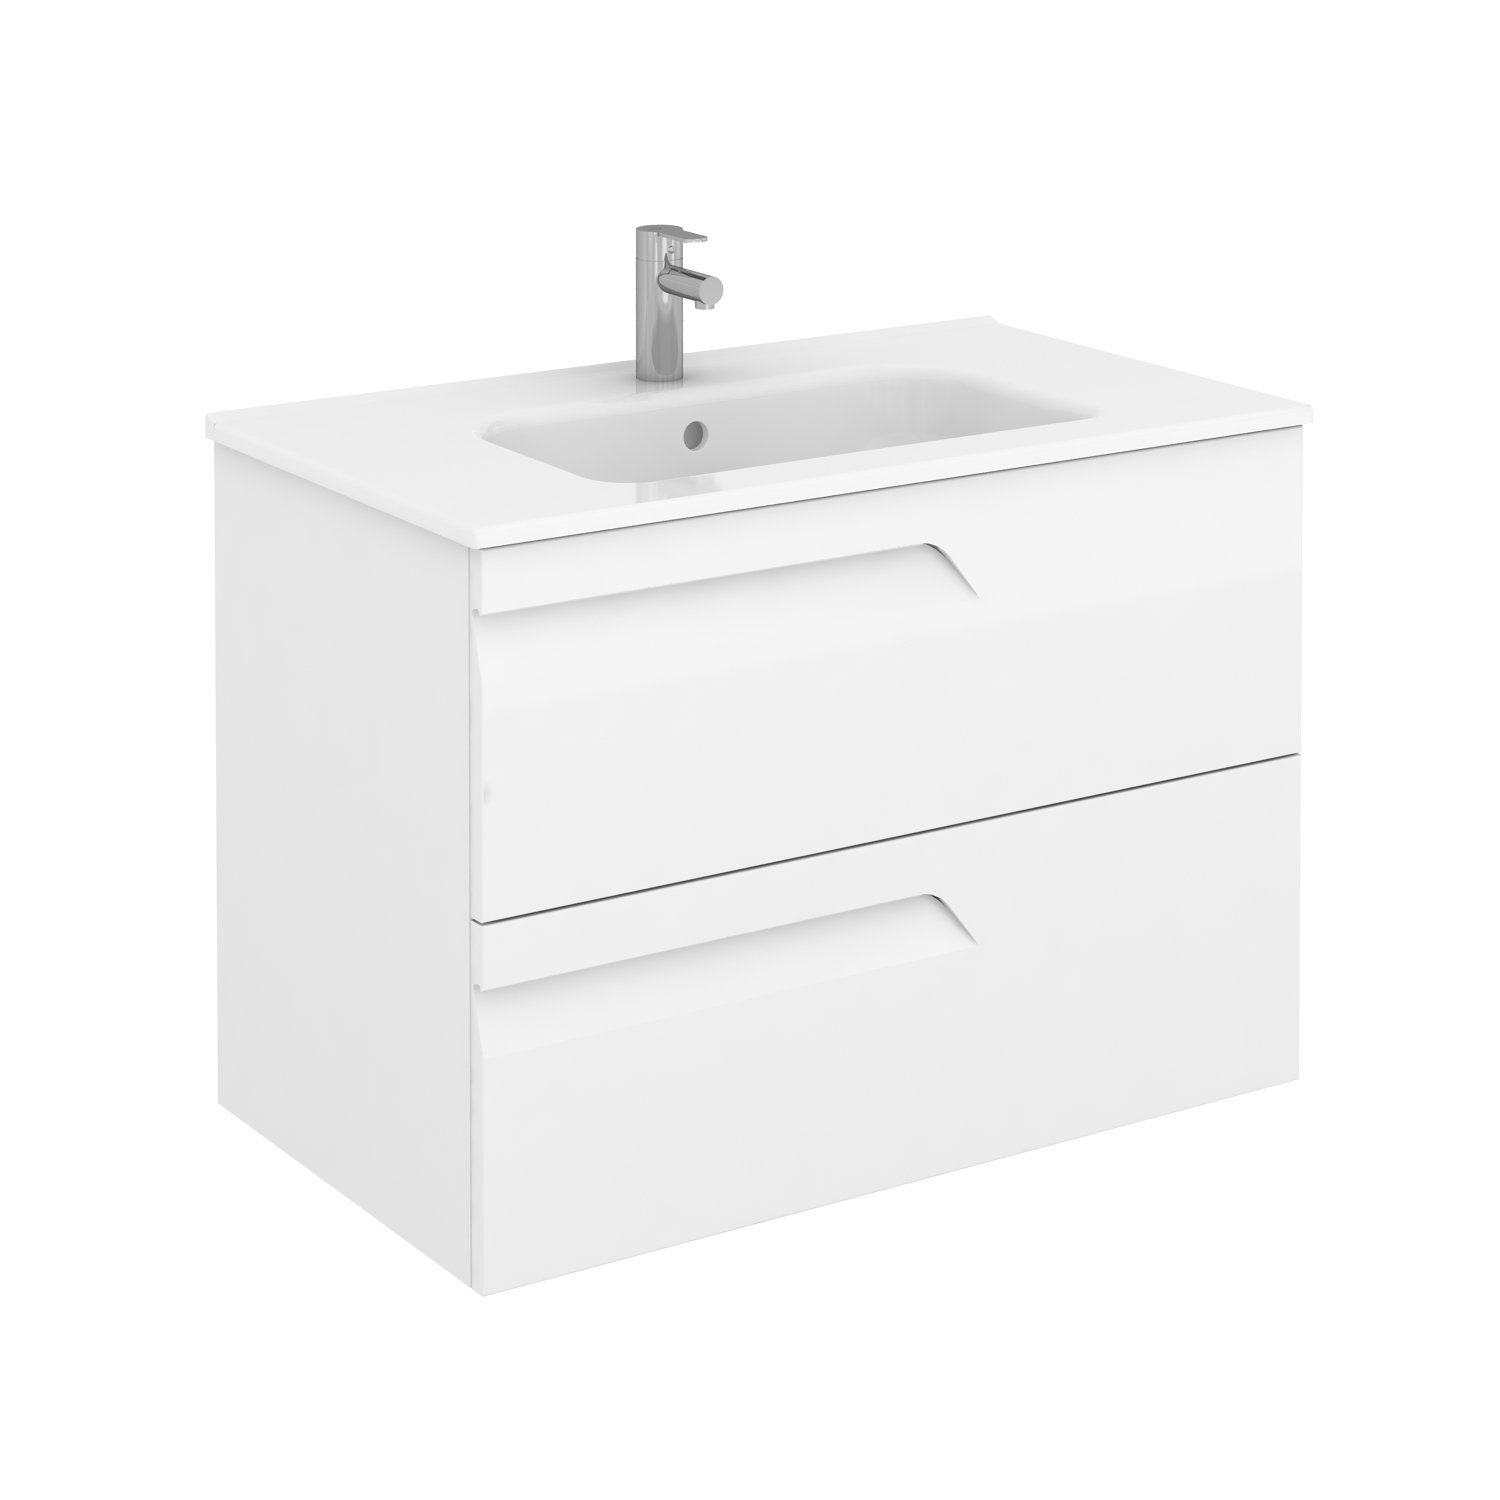 Sku 125722 123343 Item 125722 123343 Brand Royo Vitale 32 Inches Wall Mounted Modern Bathroom Vanity 2 Drawer White With Basin Bathroom Vanities And Sink Consoles Royo White 1200 00 1300 00 Wall Mounted Engineered Wood Ceramic 30 To 34